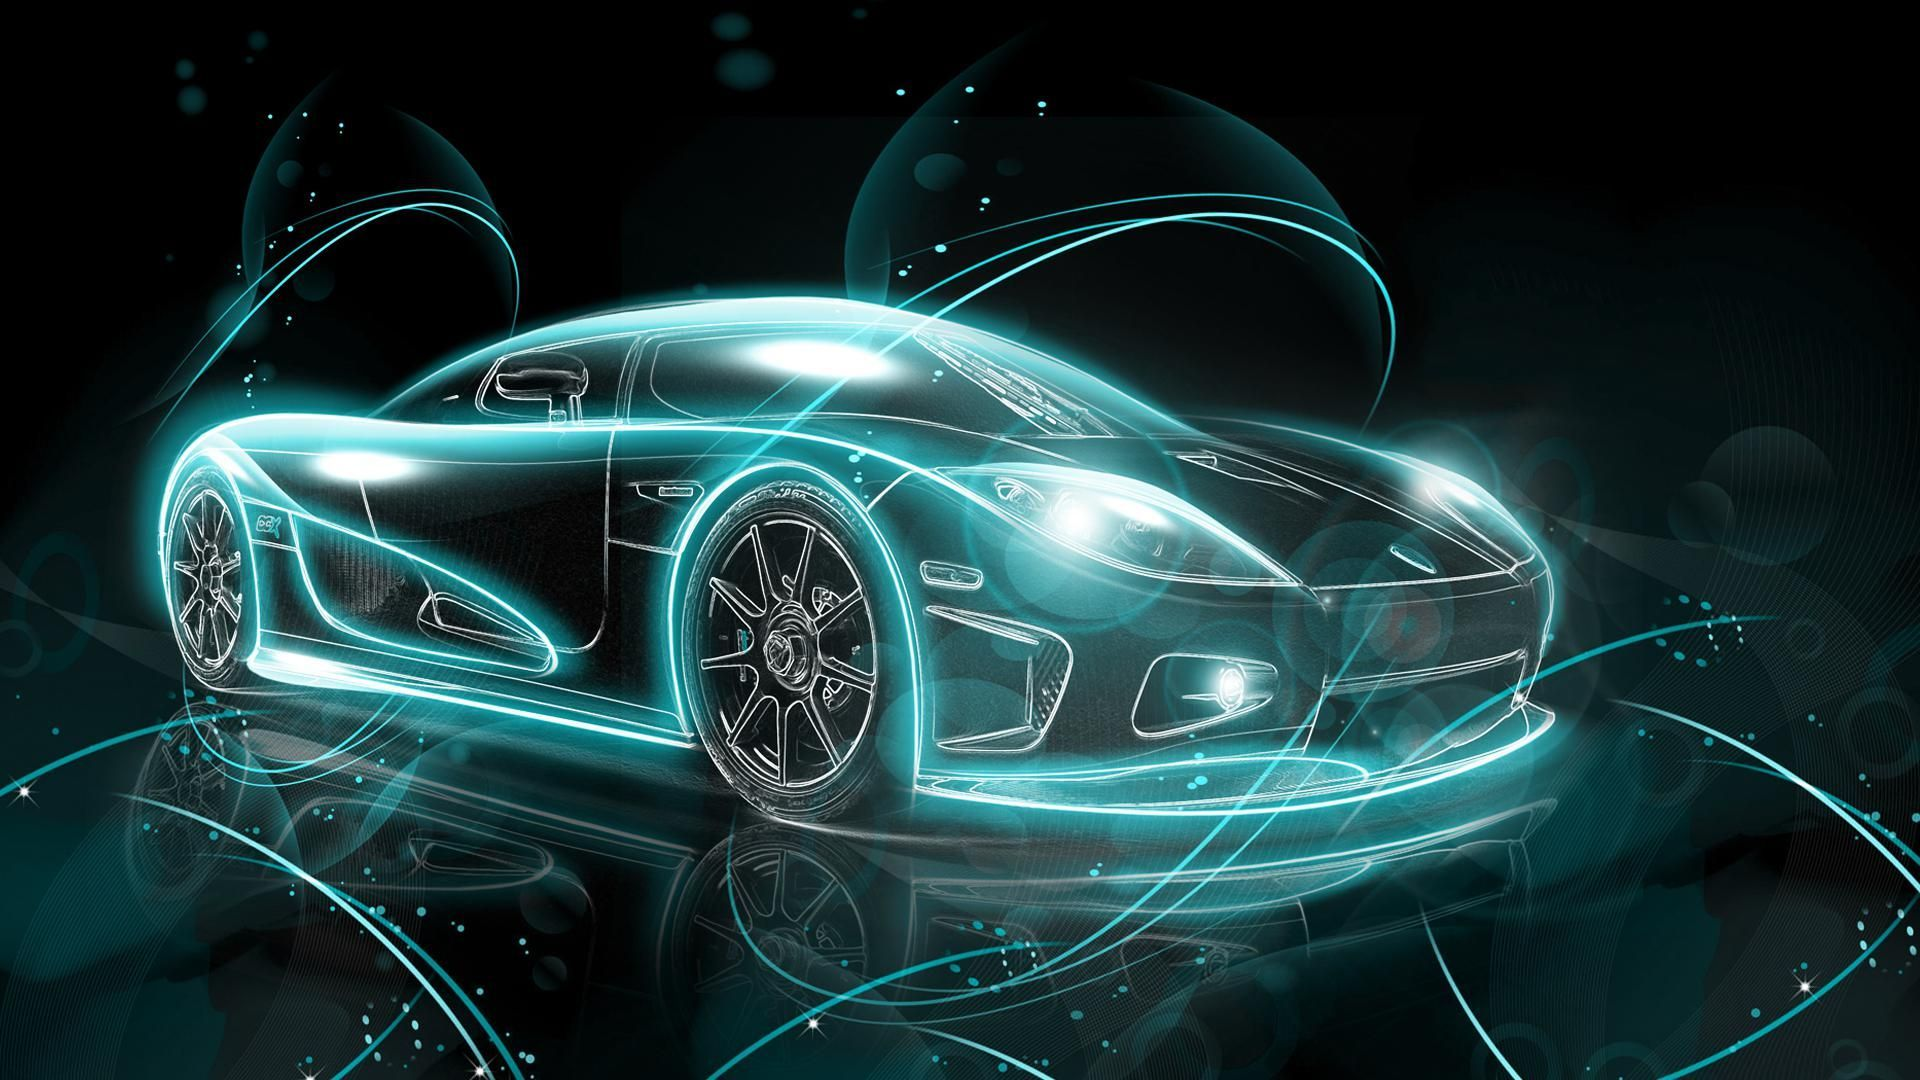 Neon Car Wallpapers Top Free Neon Car Backgrounds Wallpaperaccess